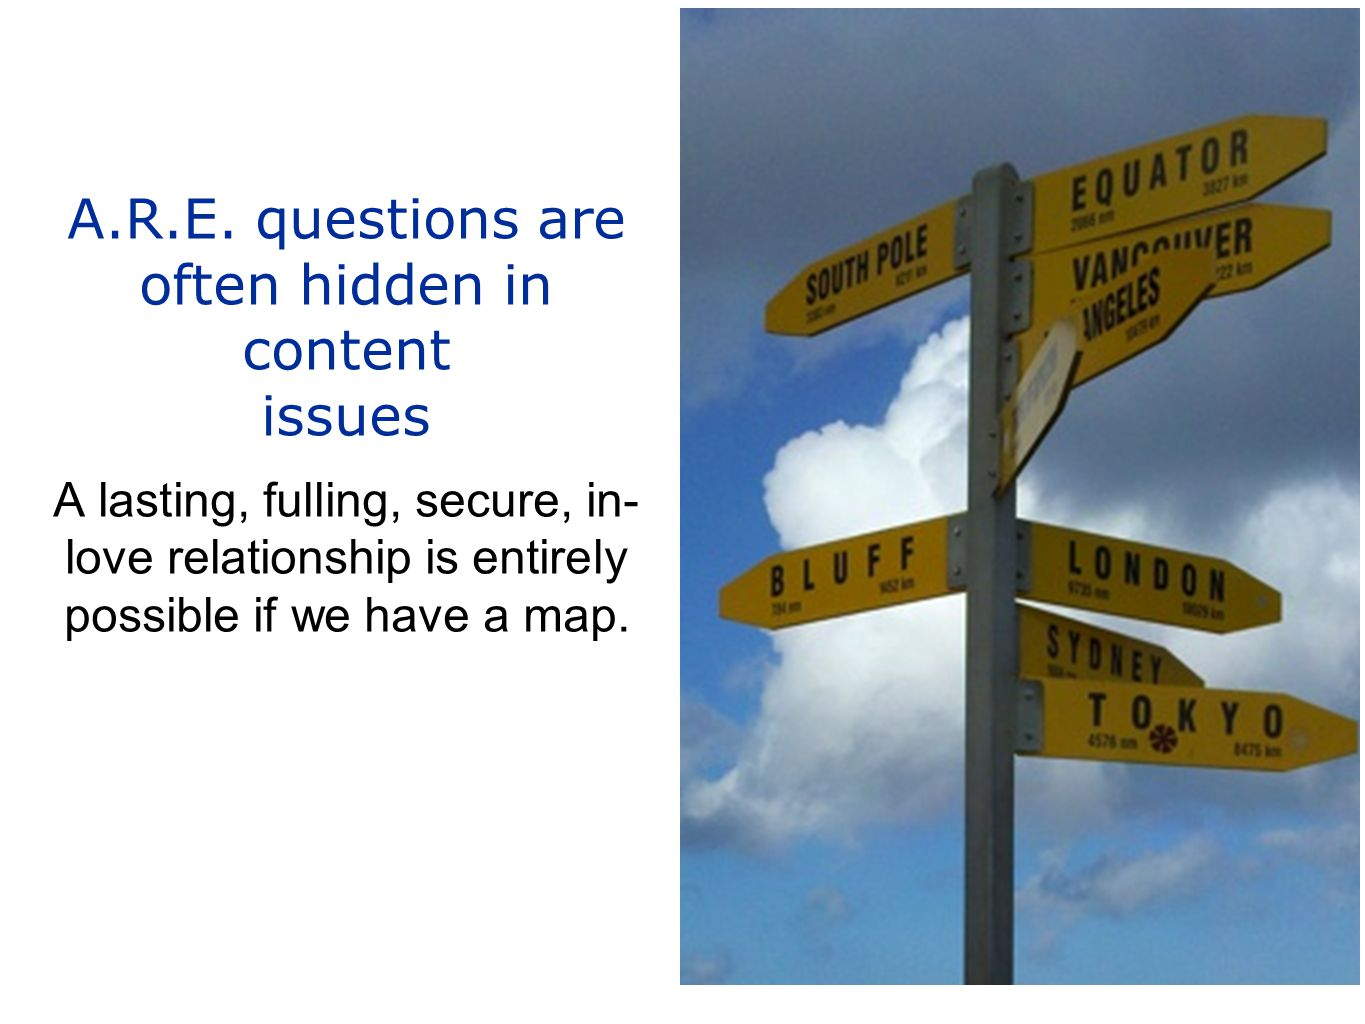 A.R.E. questions are often hidden in content issues